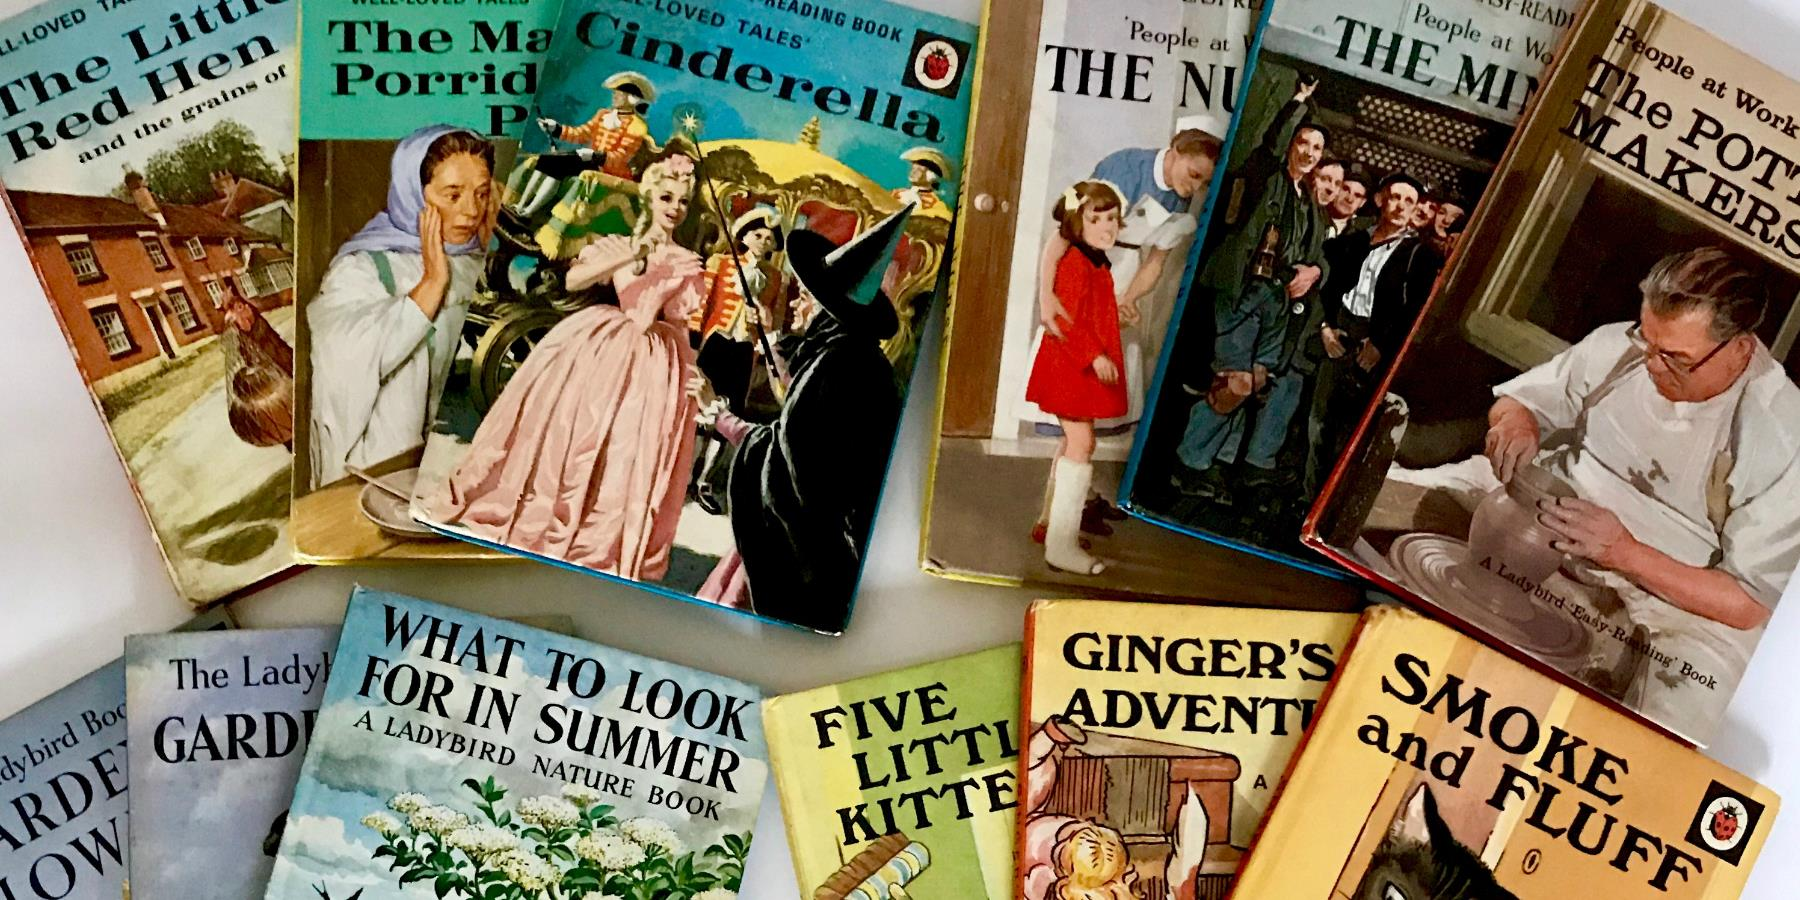 The Wonderful World of the Ladybird Book Artists